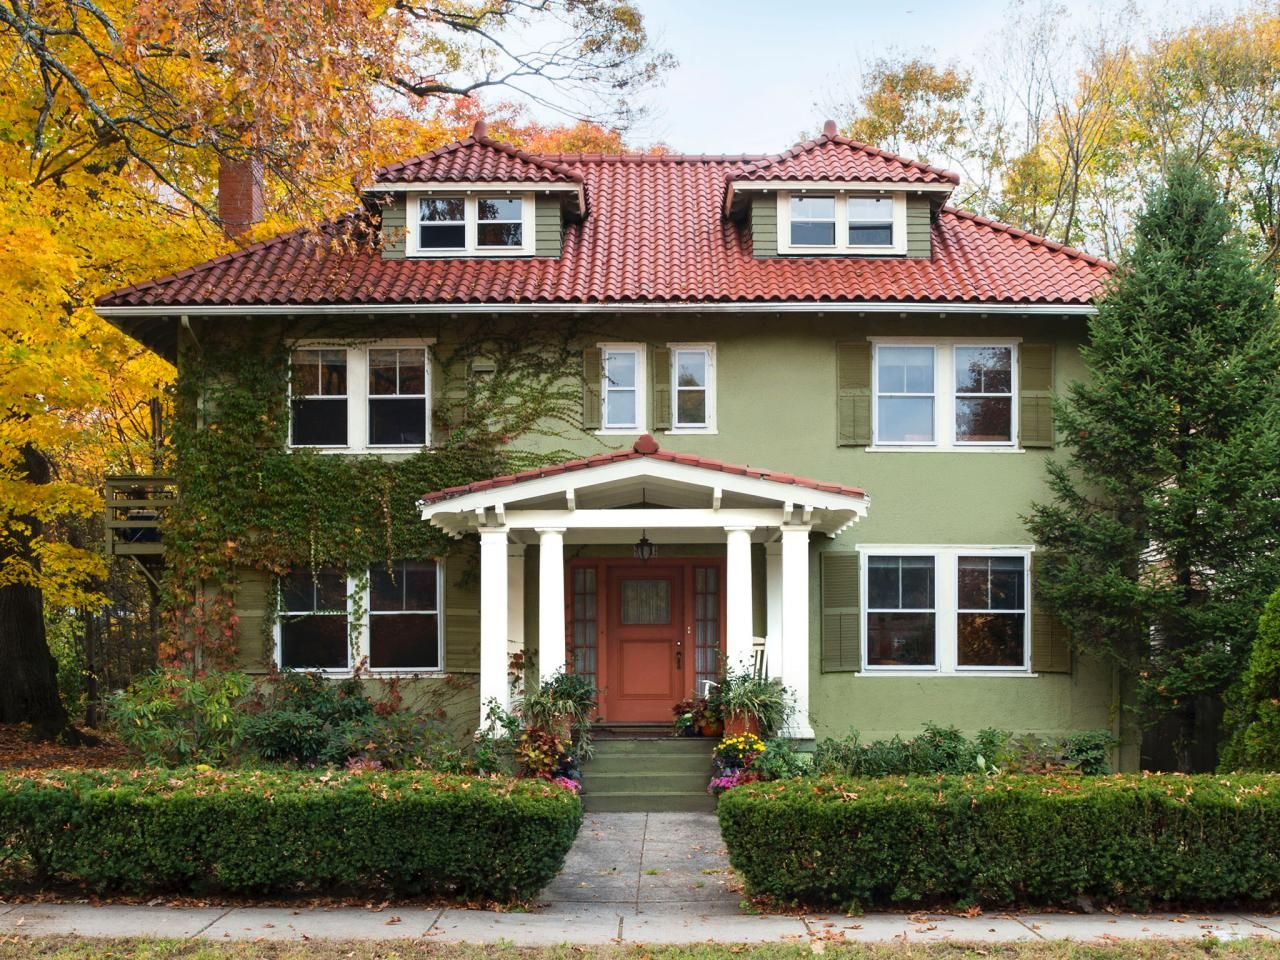 Best Curb Appeal Ideas From Newton Massachusetts Roof Tiles 400 x 300